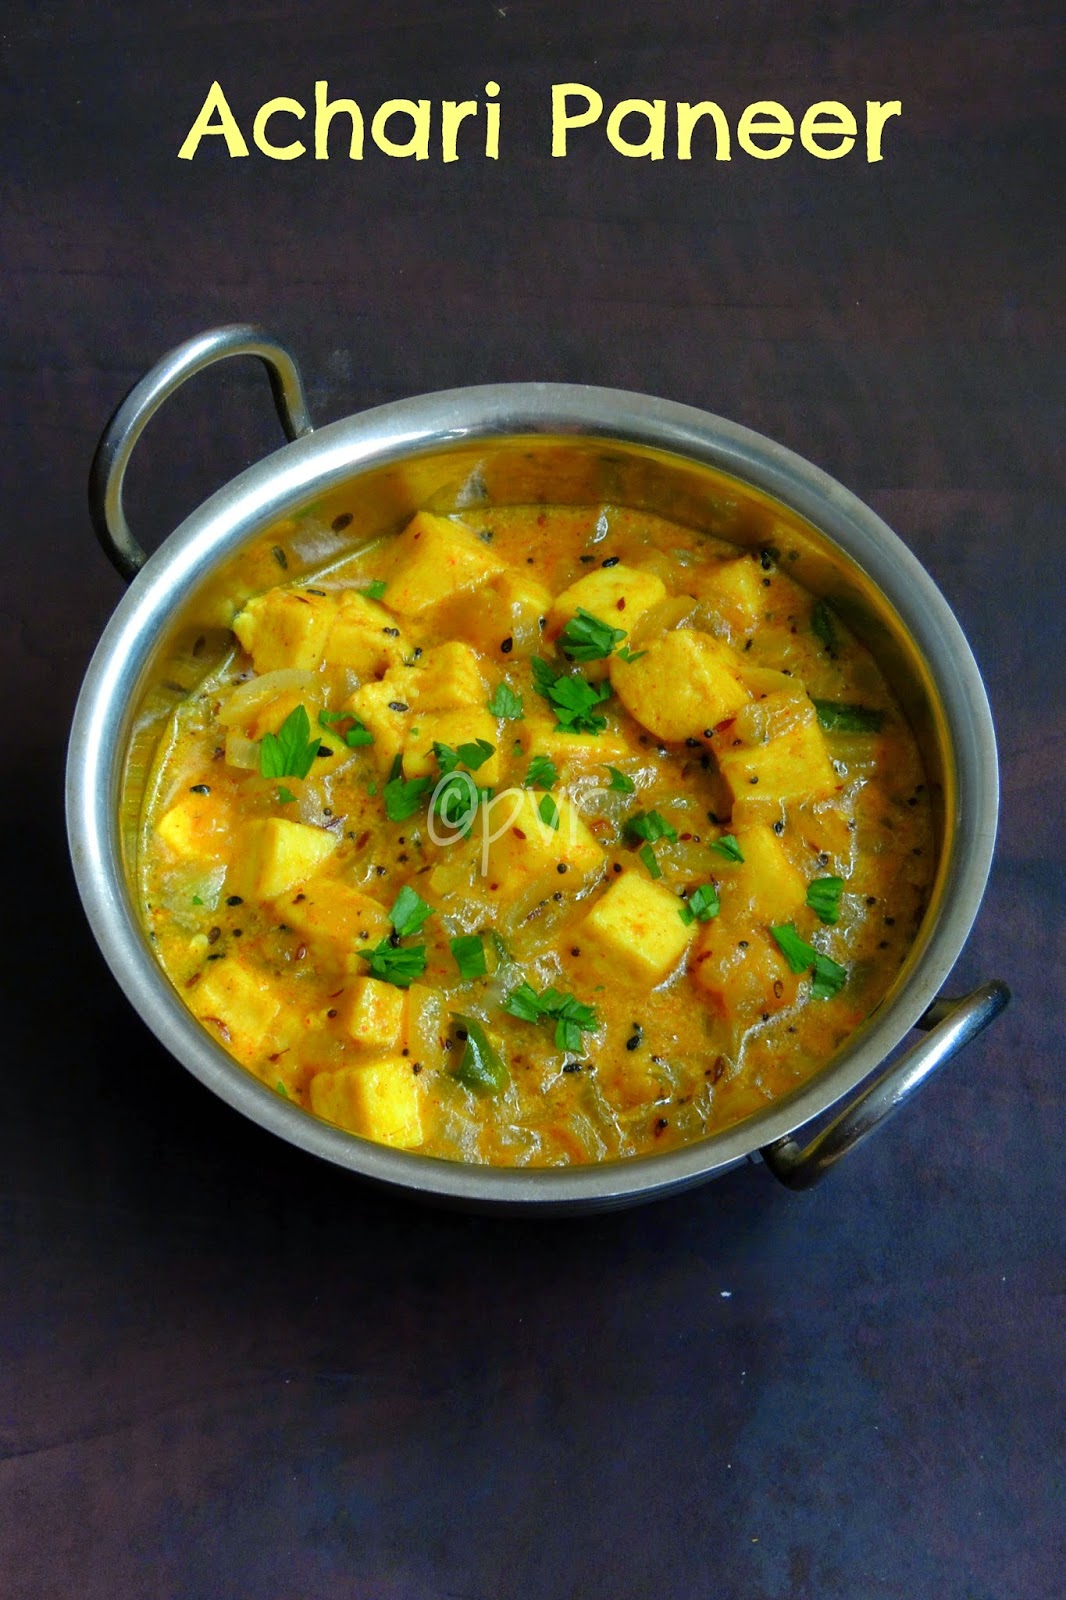 Achari Paneer, Paneer with pickling spices